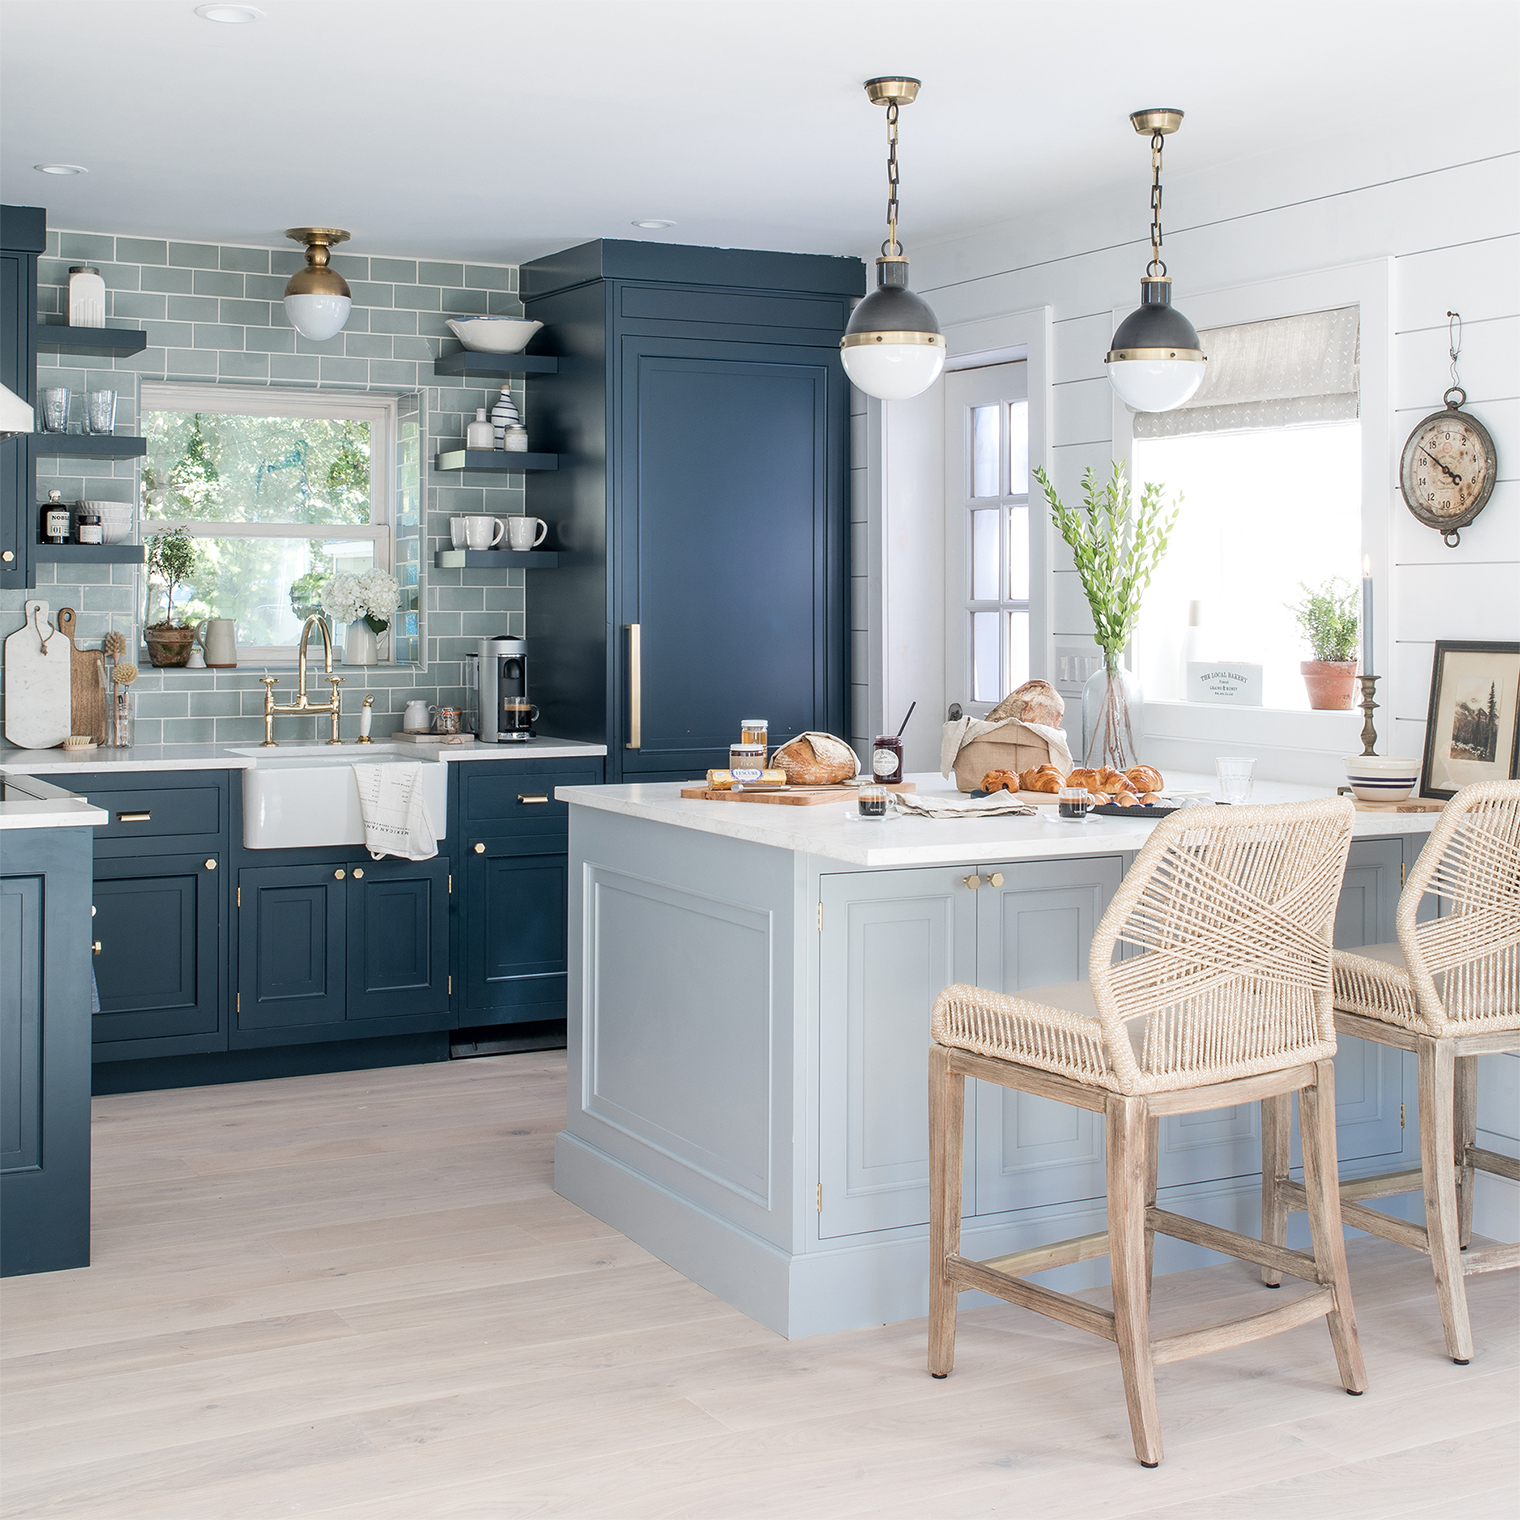 Our Beach House Kitchen: The Reveal - Bright Bazaar by Will Taylor